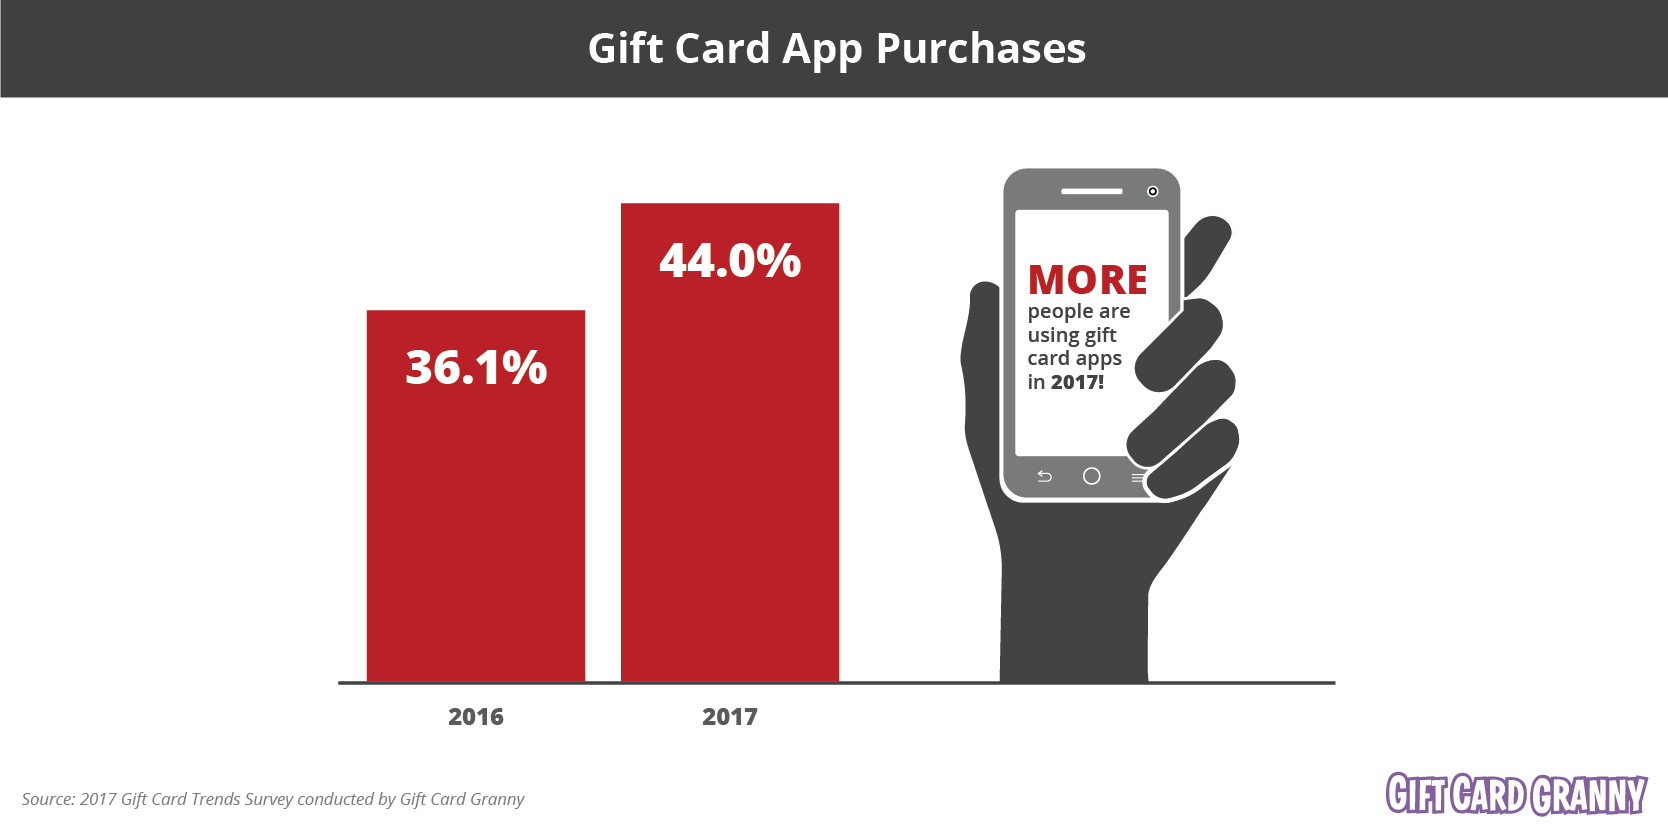 Gift Card App Purchases